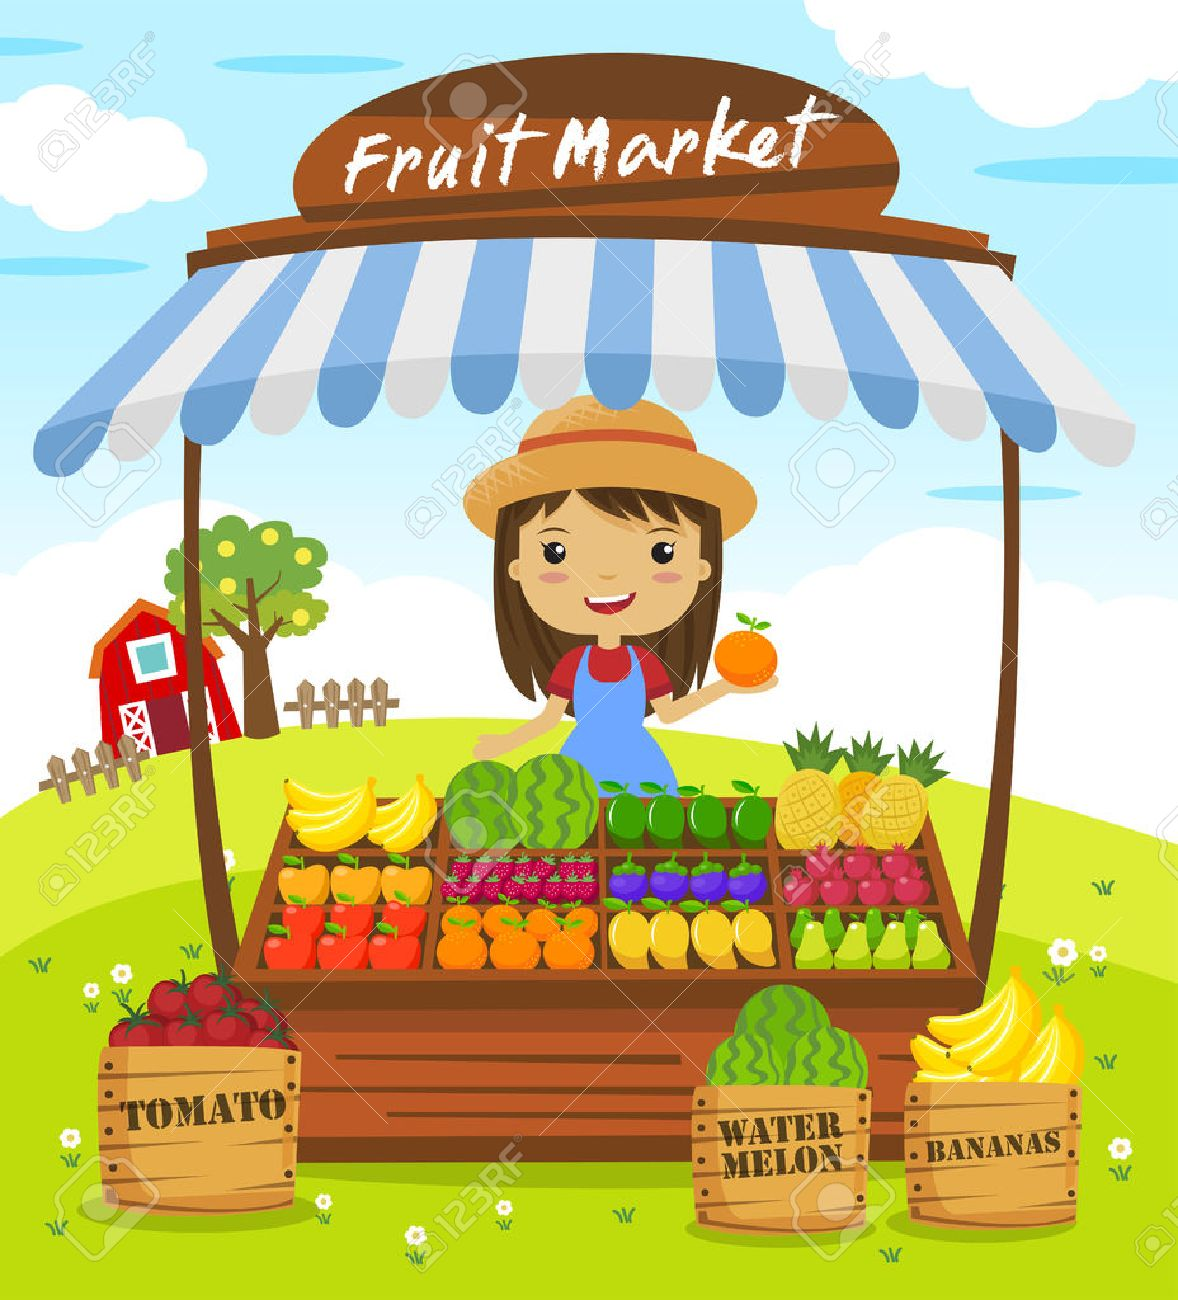 Free Clipart Cake Stall Images